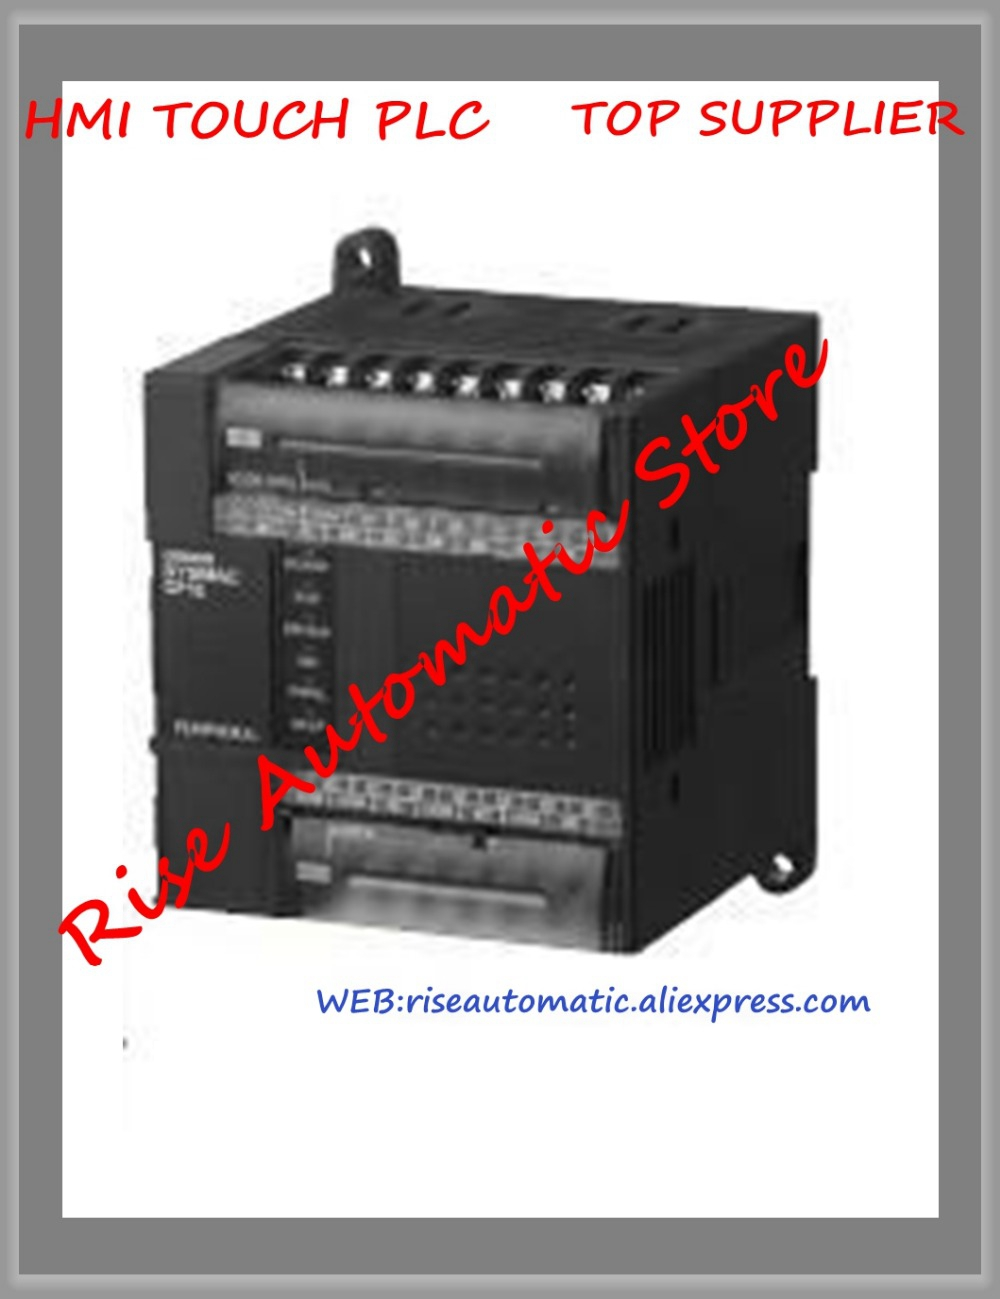 New Original unit 12 DI 8 DO Relay Programmable Logic controller CP1E-N20DR-A AC100-240V cp1en60drd new omr programmable logic controller cp1e n60dr d plc cp1e unit dc24v 36 di 24 do relay motor controller